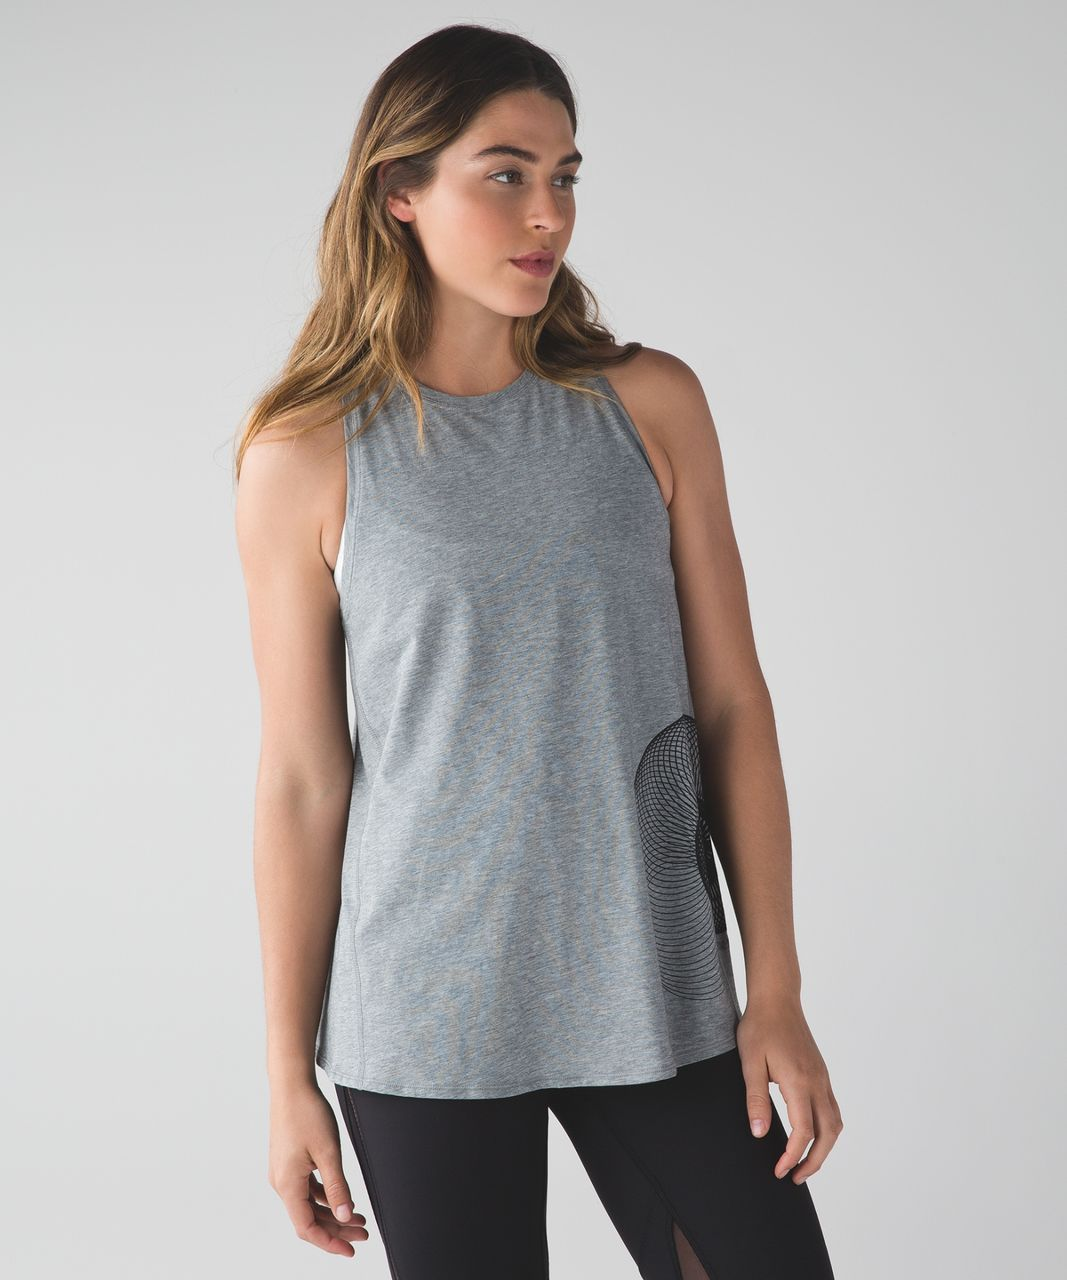 Lululemon Nook Tank - Heathered Medium Grey